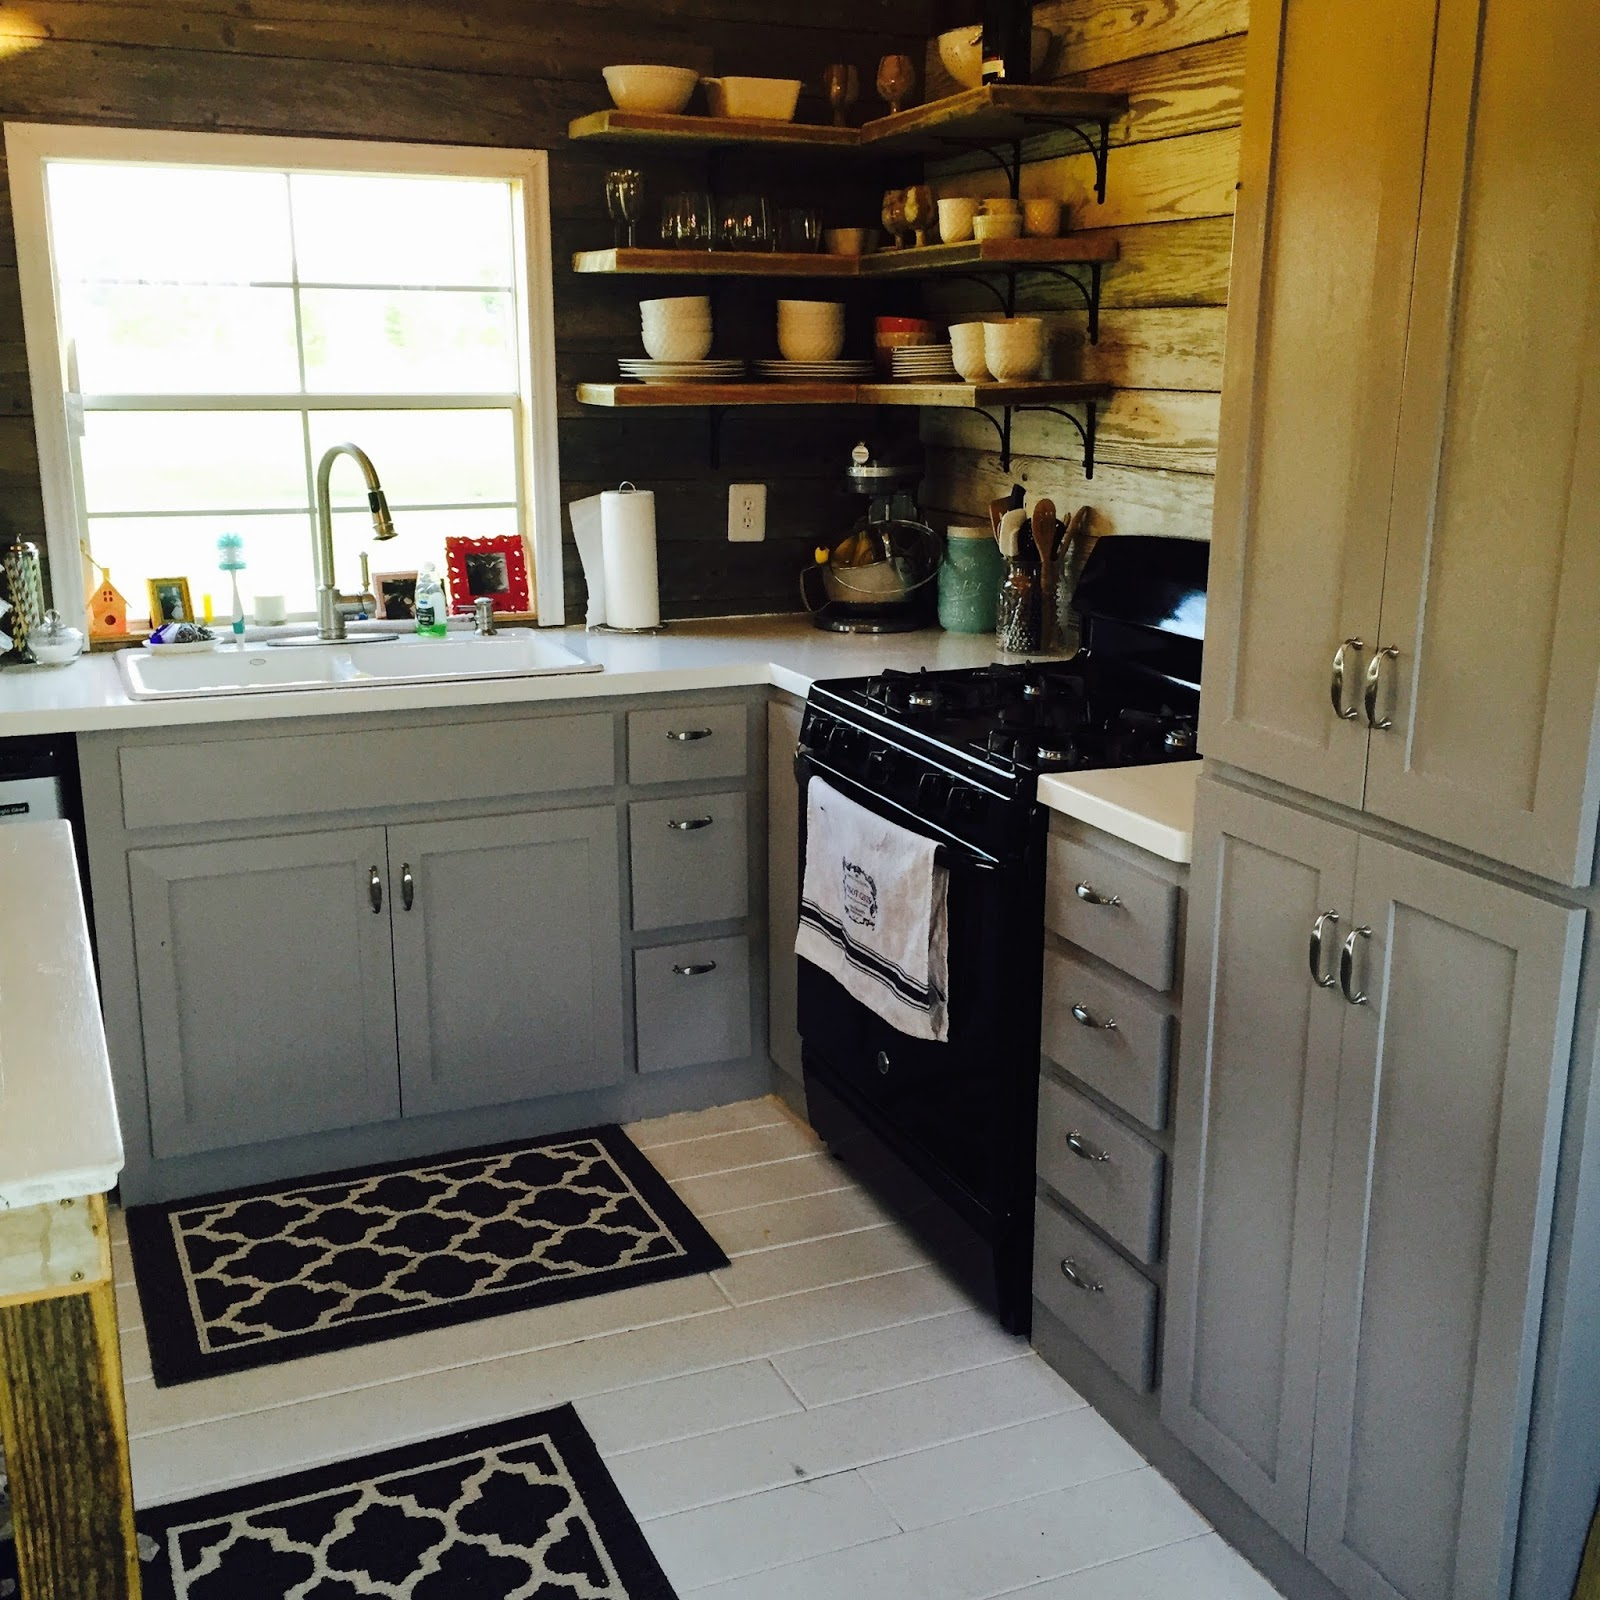 Tiny home for family of 5 - Follow Tiny House Town On Facebook For Regular Tiny House Updates Here